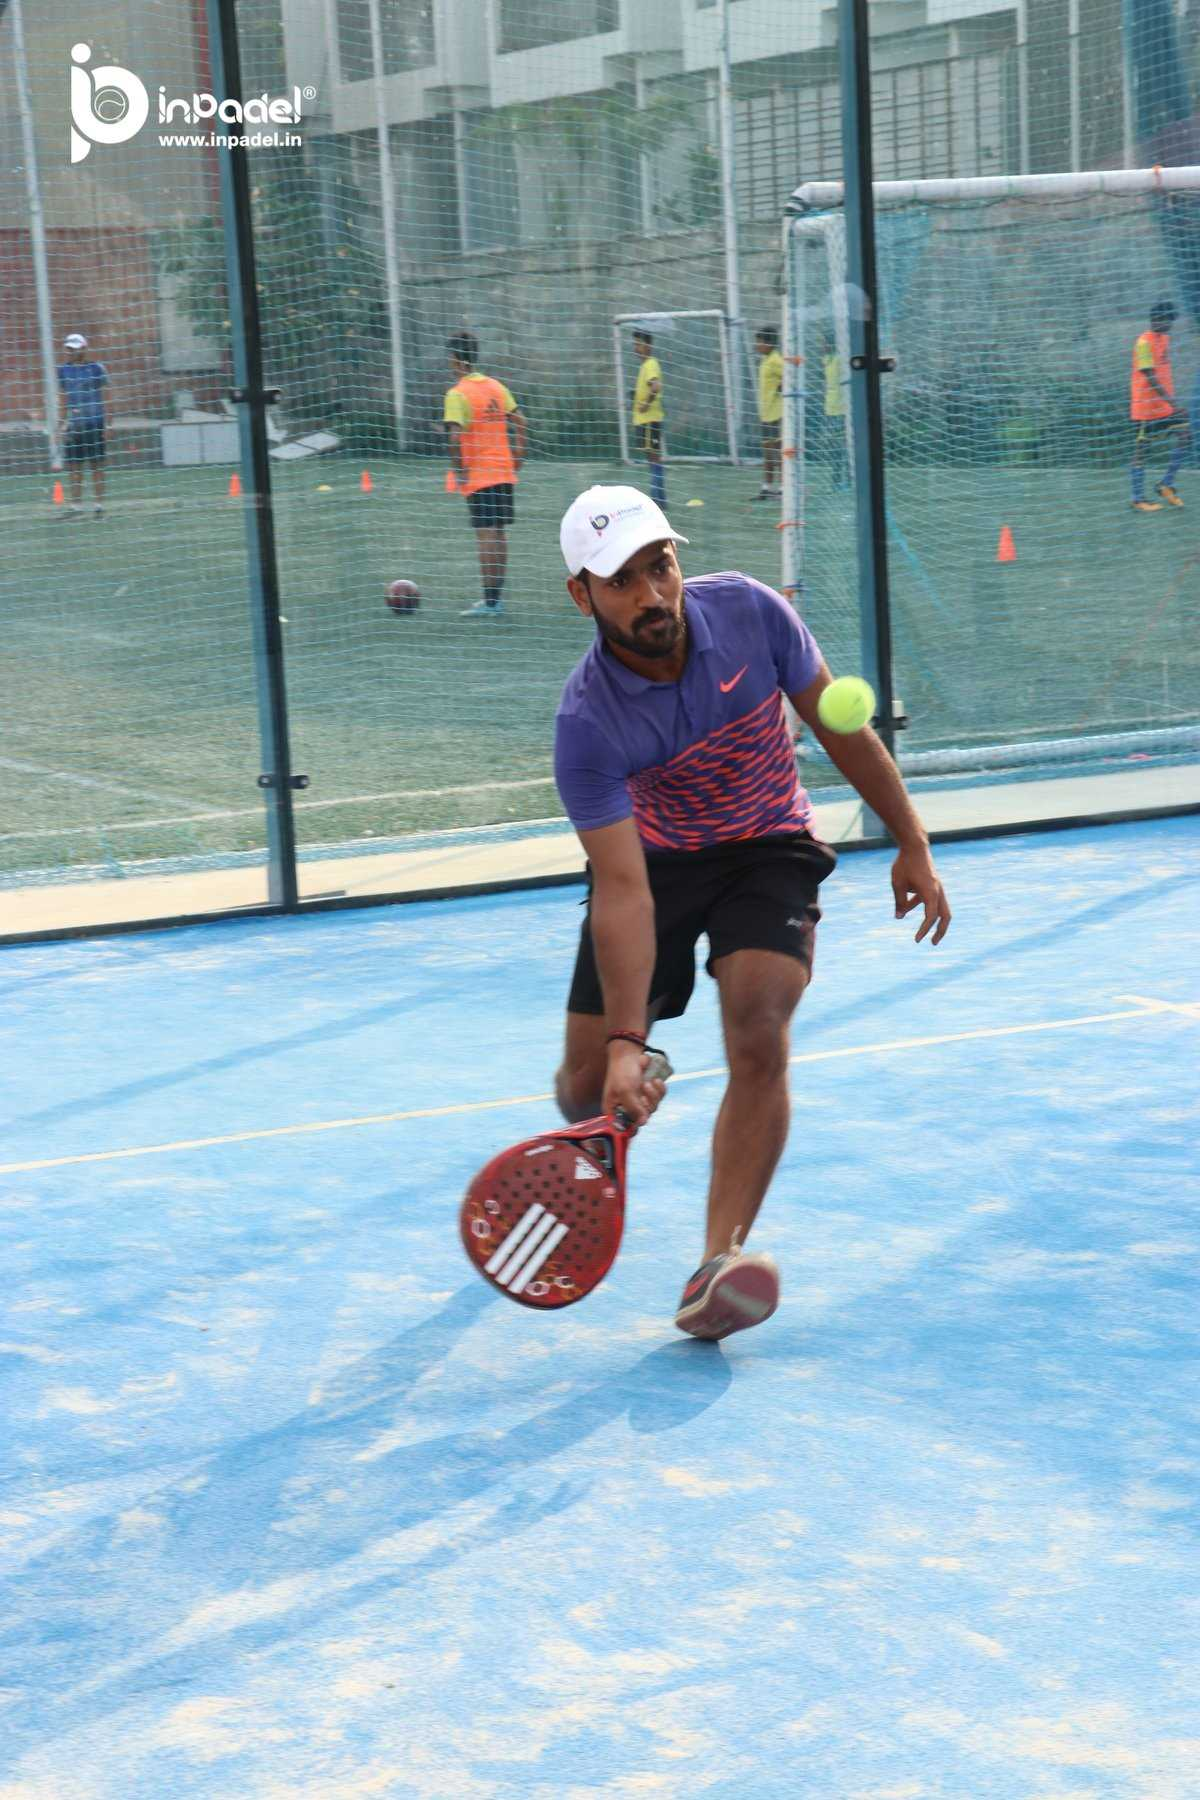 InPadel 1Yr Celebration of Padel in INDIA - Padel - Padel India (76)